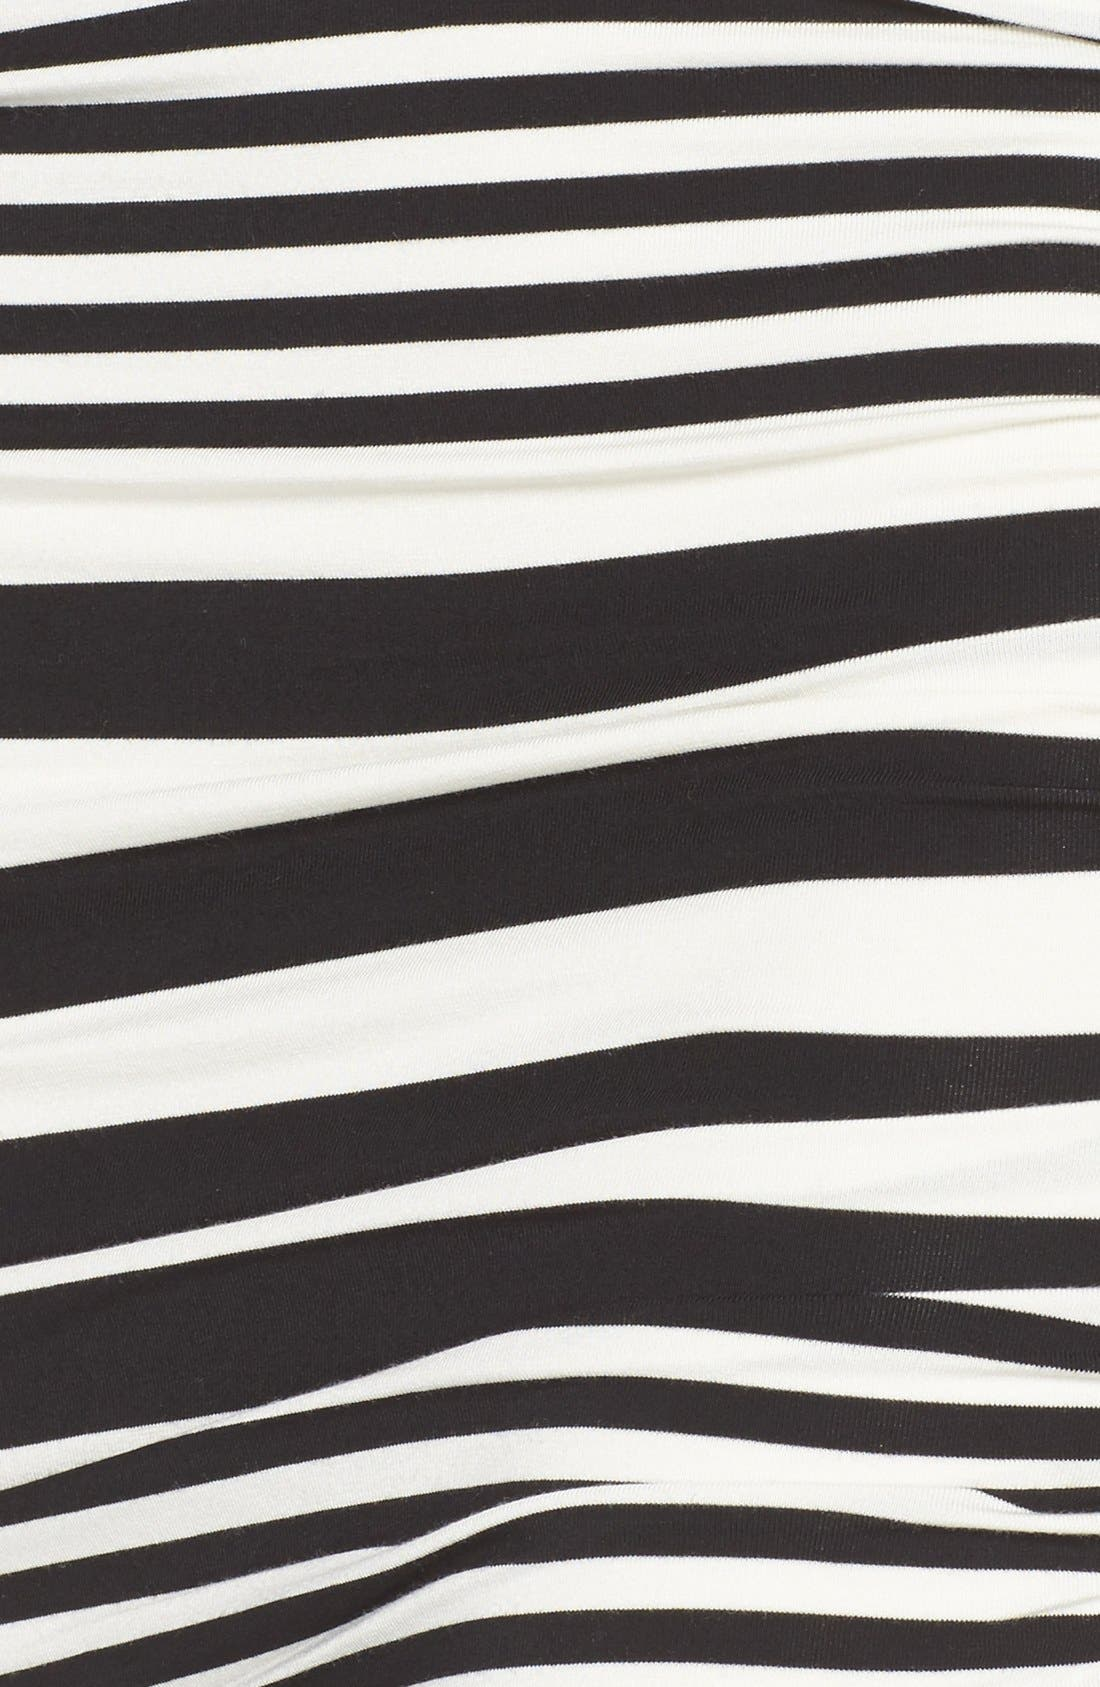 Stripe Ruched Jersey Tank Dress,                             Alternate thumbnail 4, color,                             001